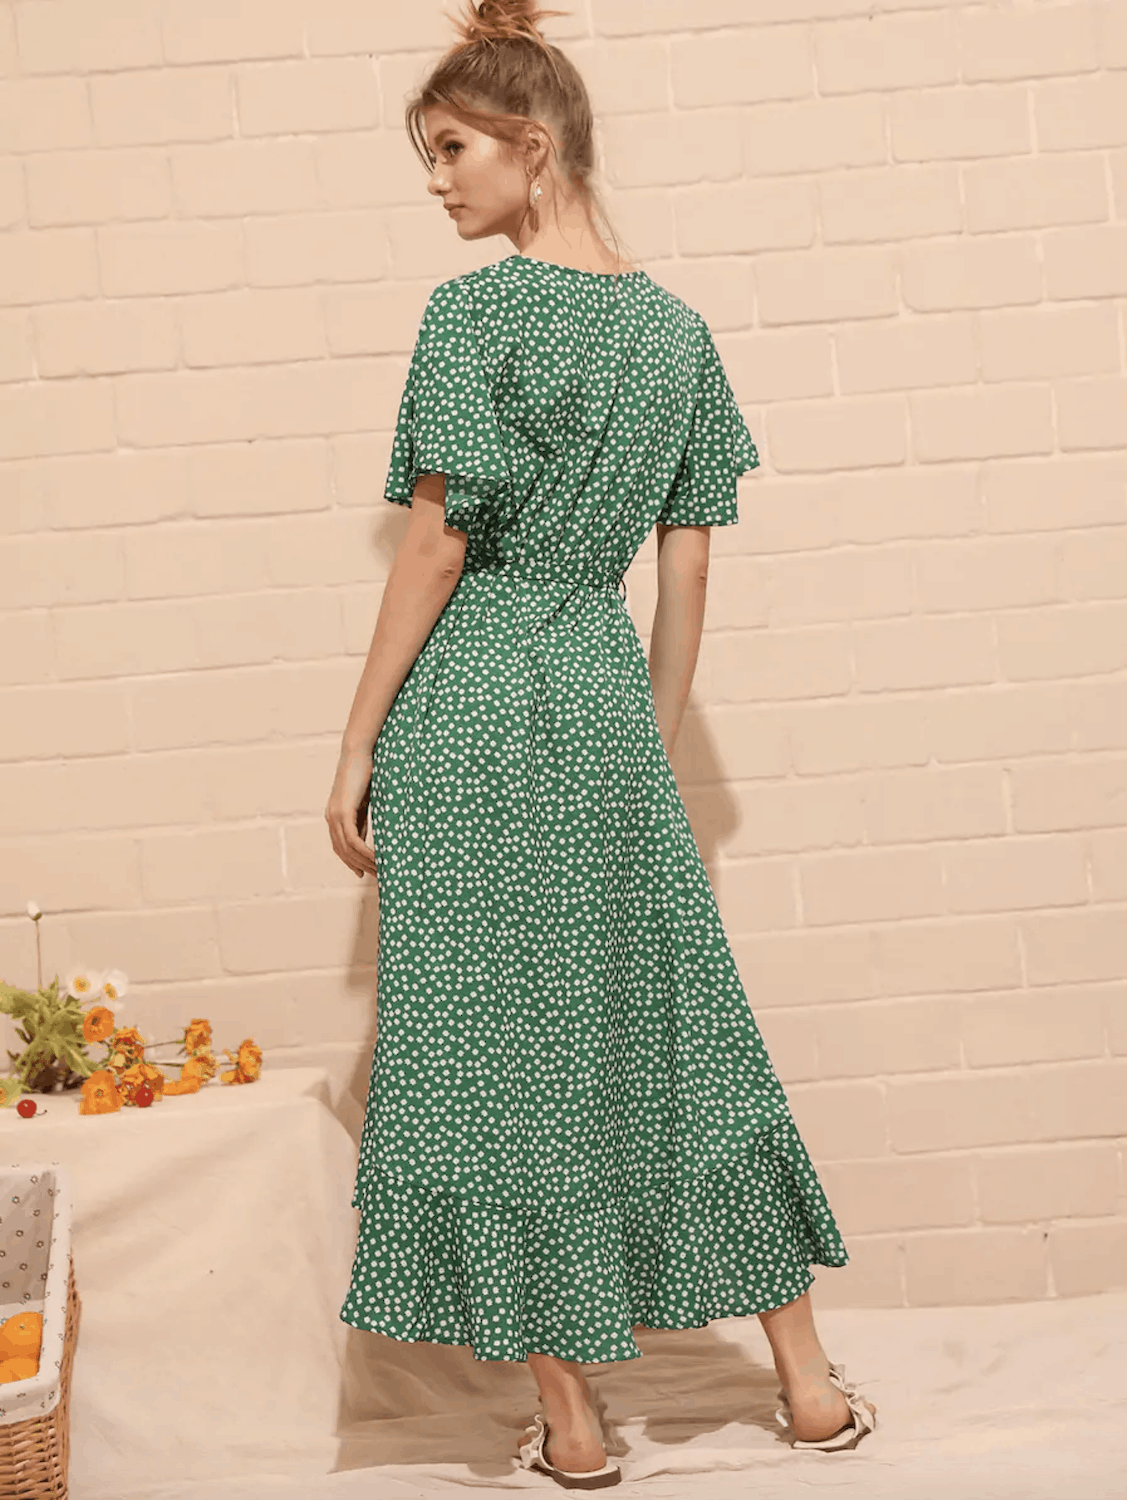 Summer Honeymoon Outfits for Her Green Ditsy Floral Print Wrap Dress 3